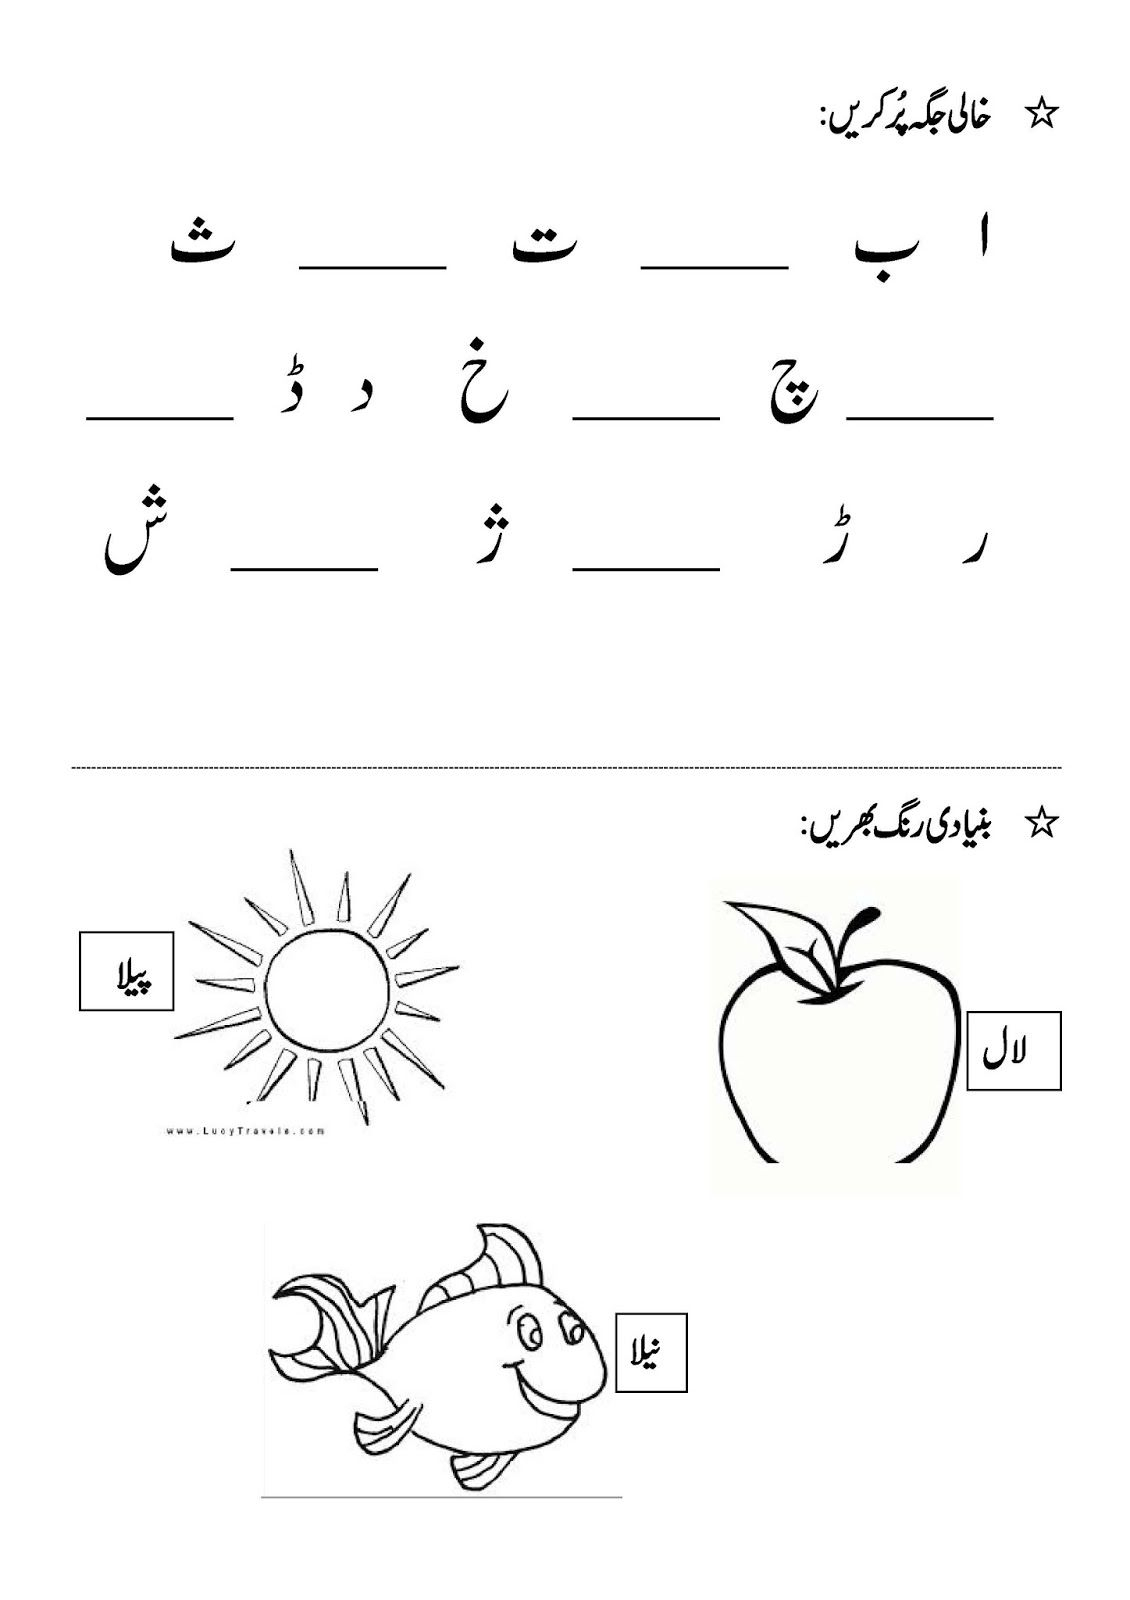 Sr Gulshan The City Nursery-Ii: Urdu First Term | Preschool for Alphabet Urdu Worksheets Pdf